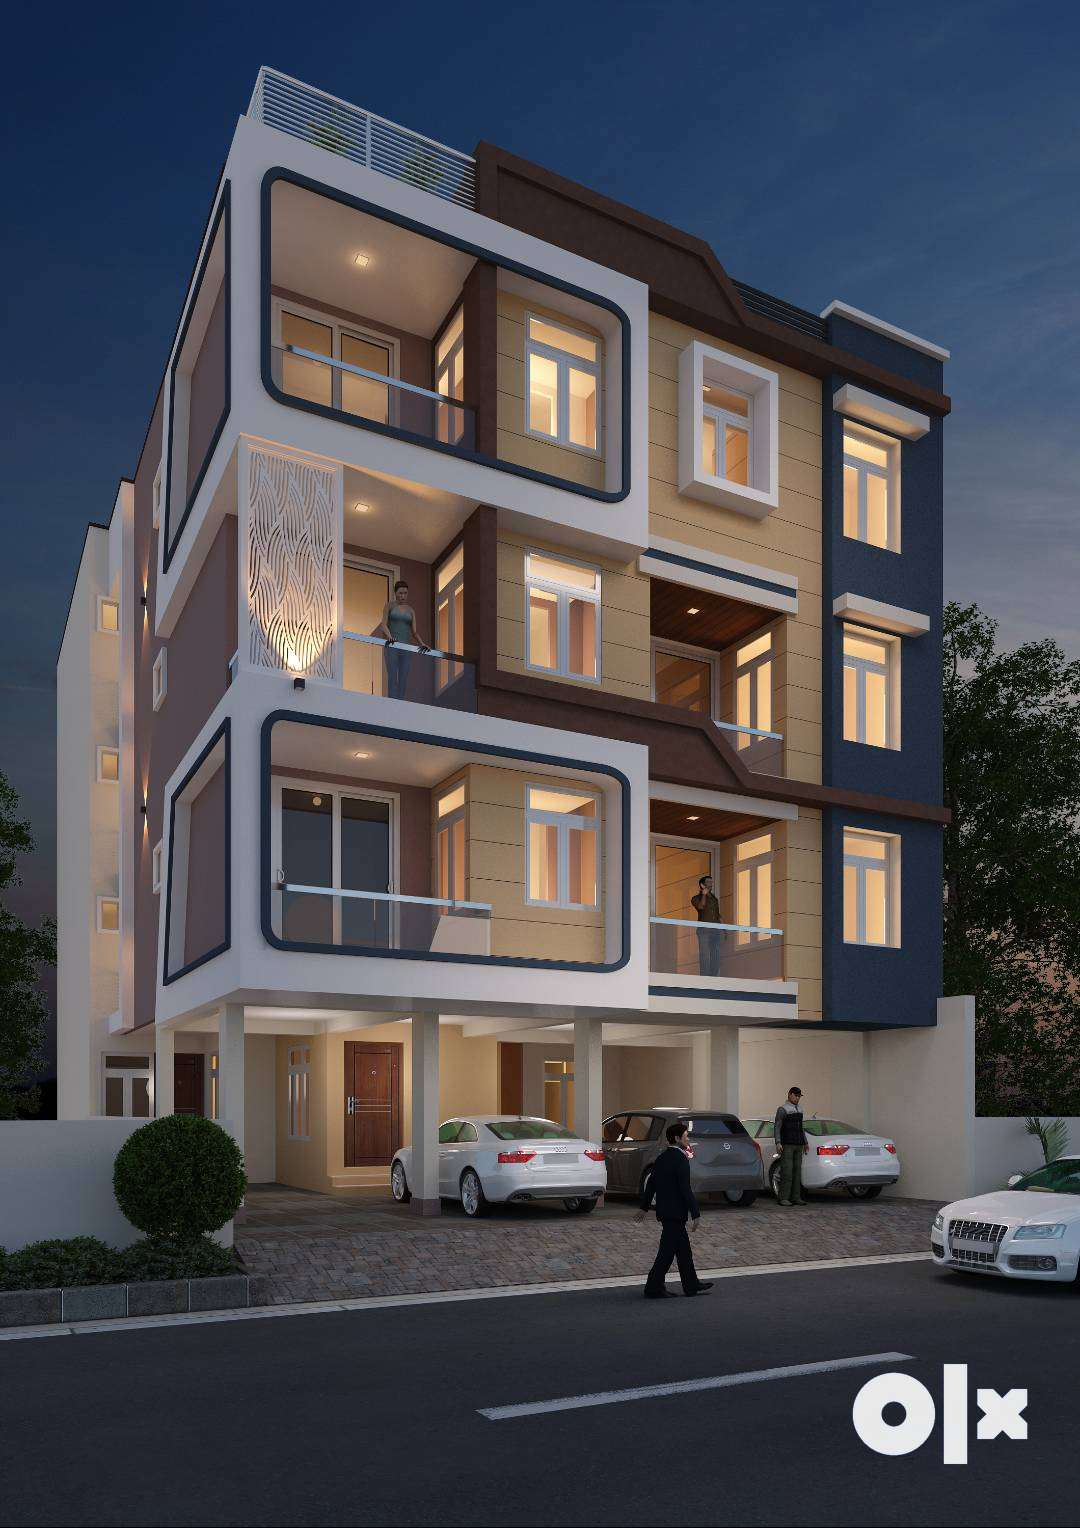 Modern design with well planned spaces - 3 BHK in Malviya Nagar